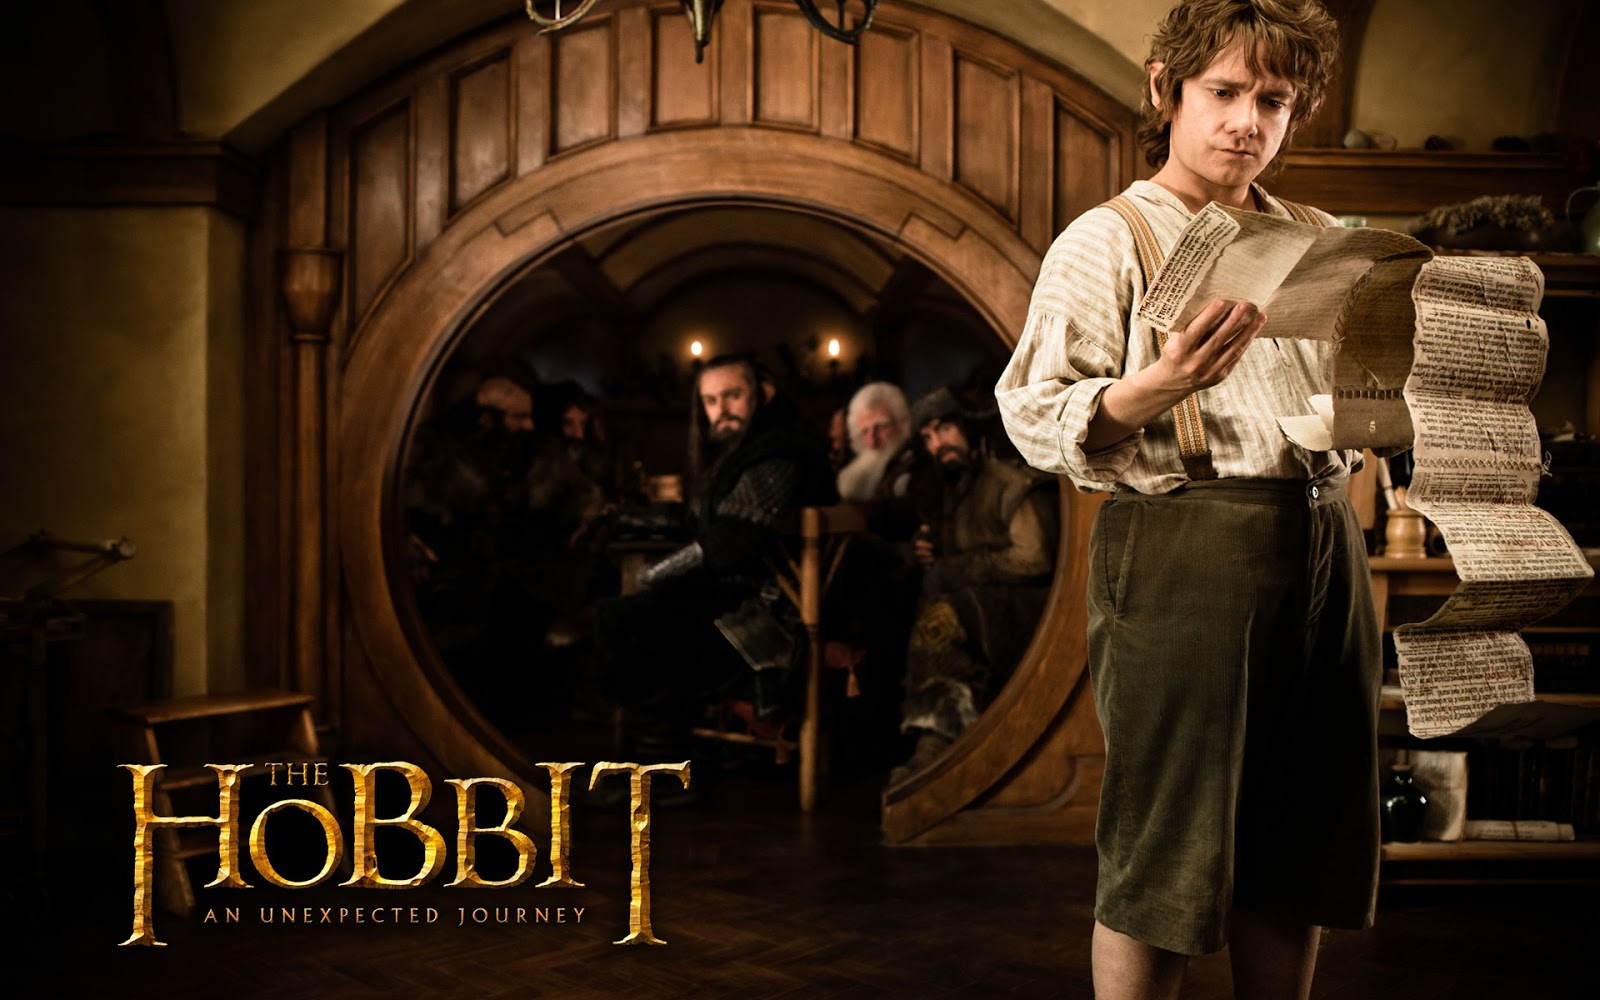 http://3.bp.blogspot.com/-j69r269Z_Jo/UMvdBR53GzI/AAAAAAAAA0k/CsUwf747r88/s1600/The+Hobbit+Movie+Wallpapers.jpg